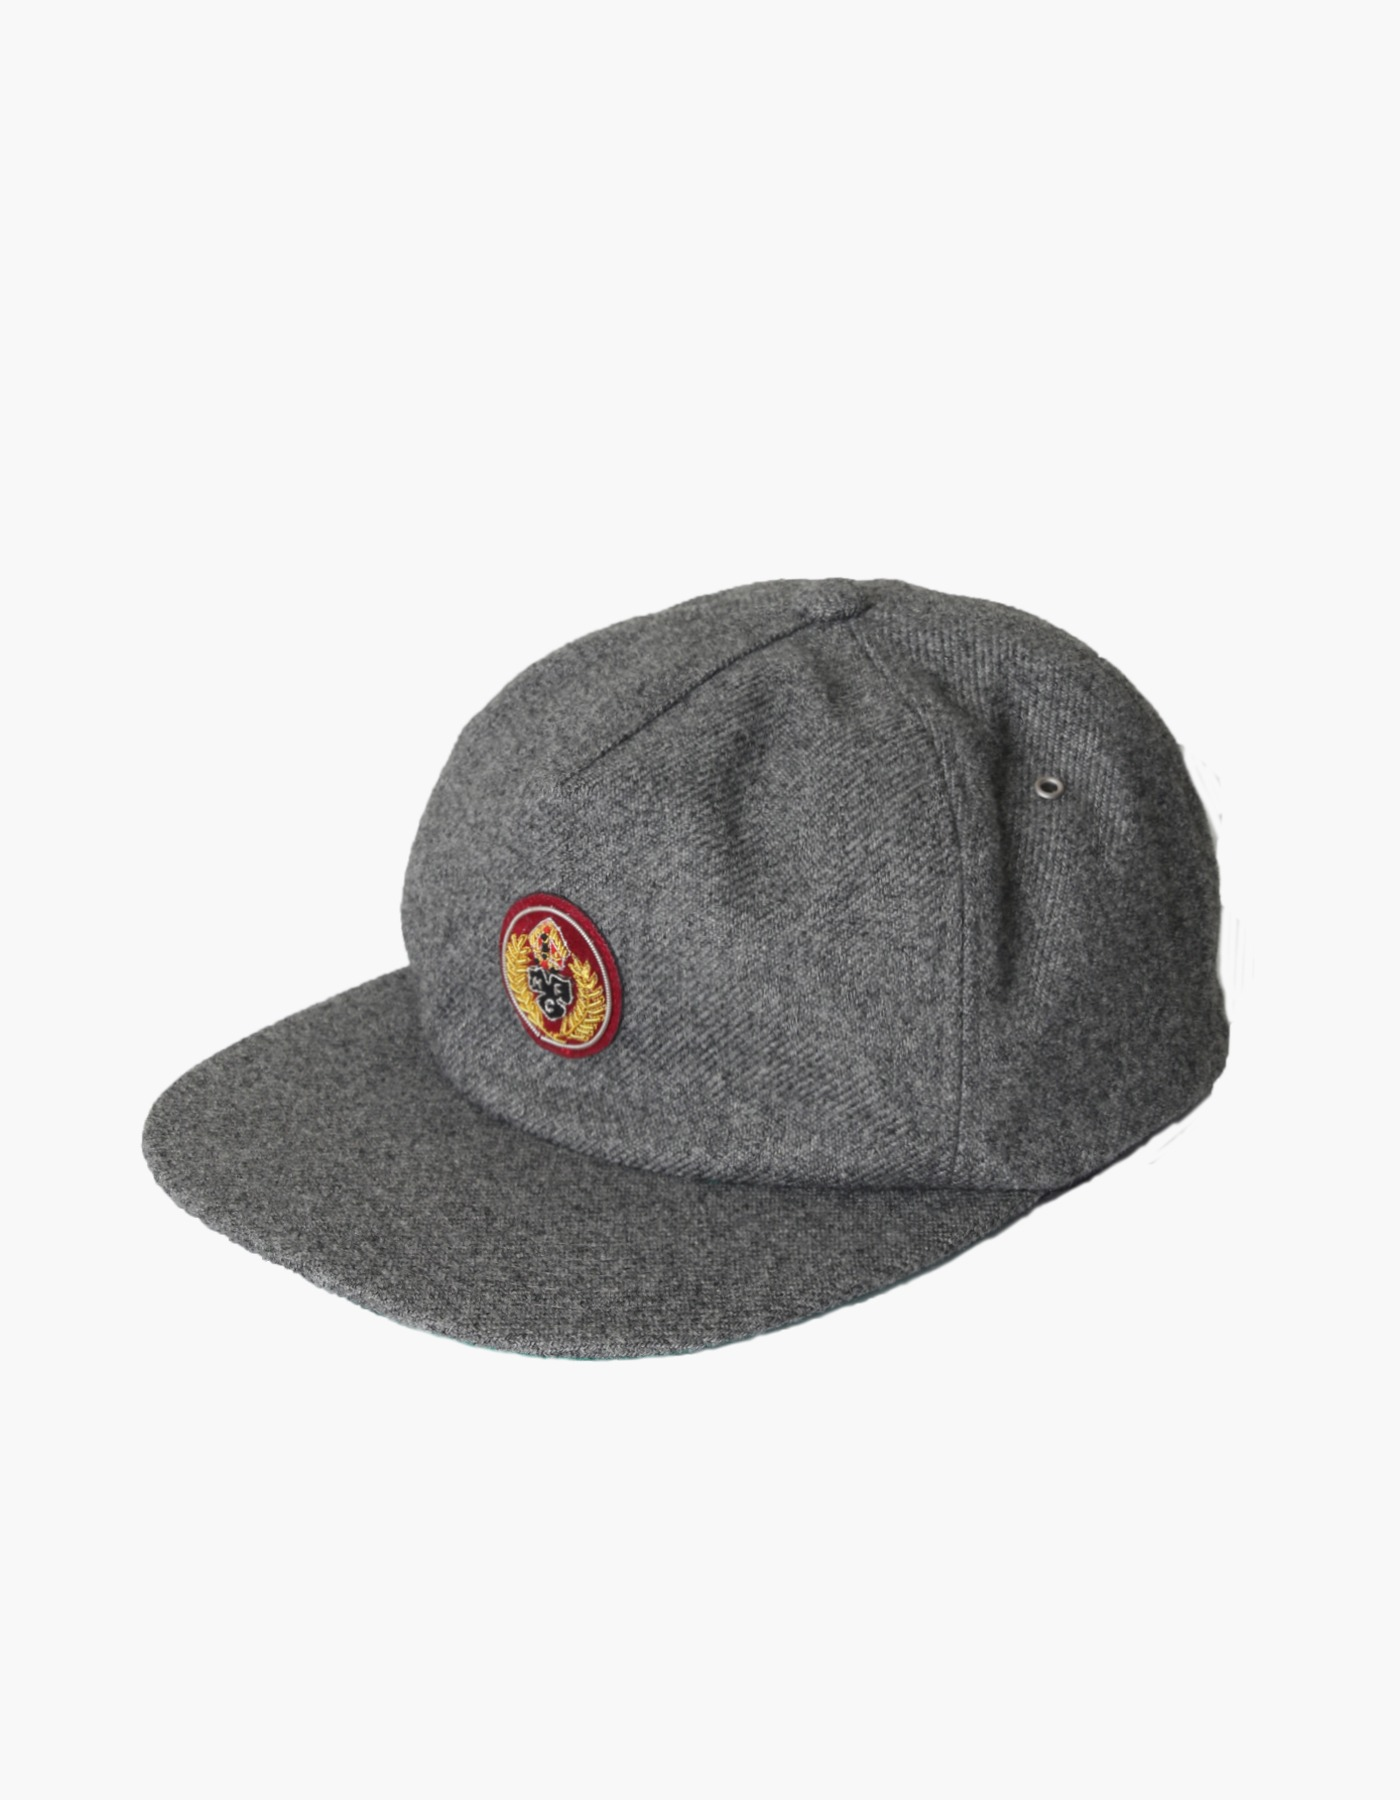 HFC CREST FAUX WOOL CAP / GREY